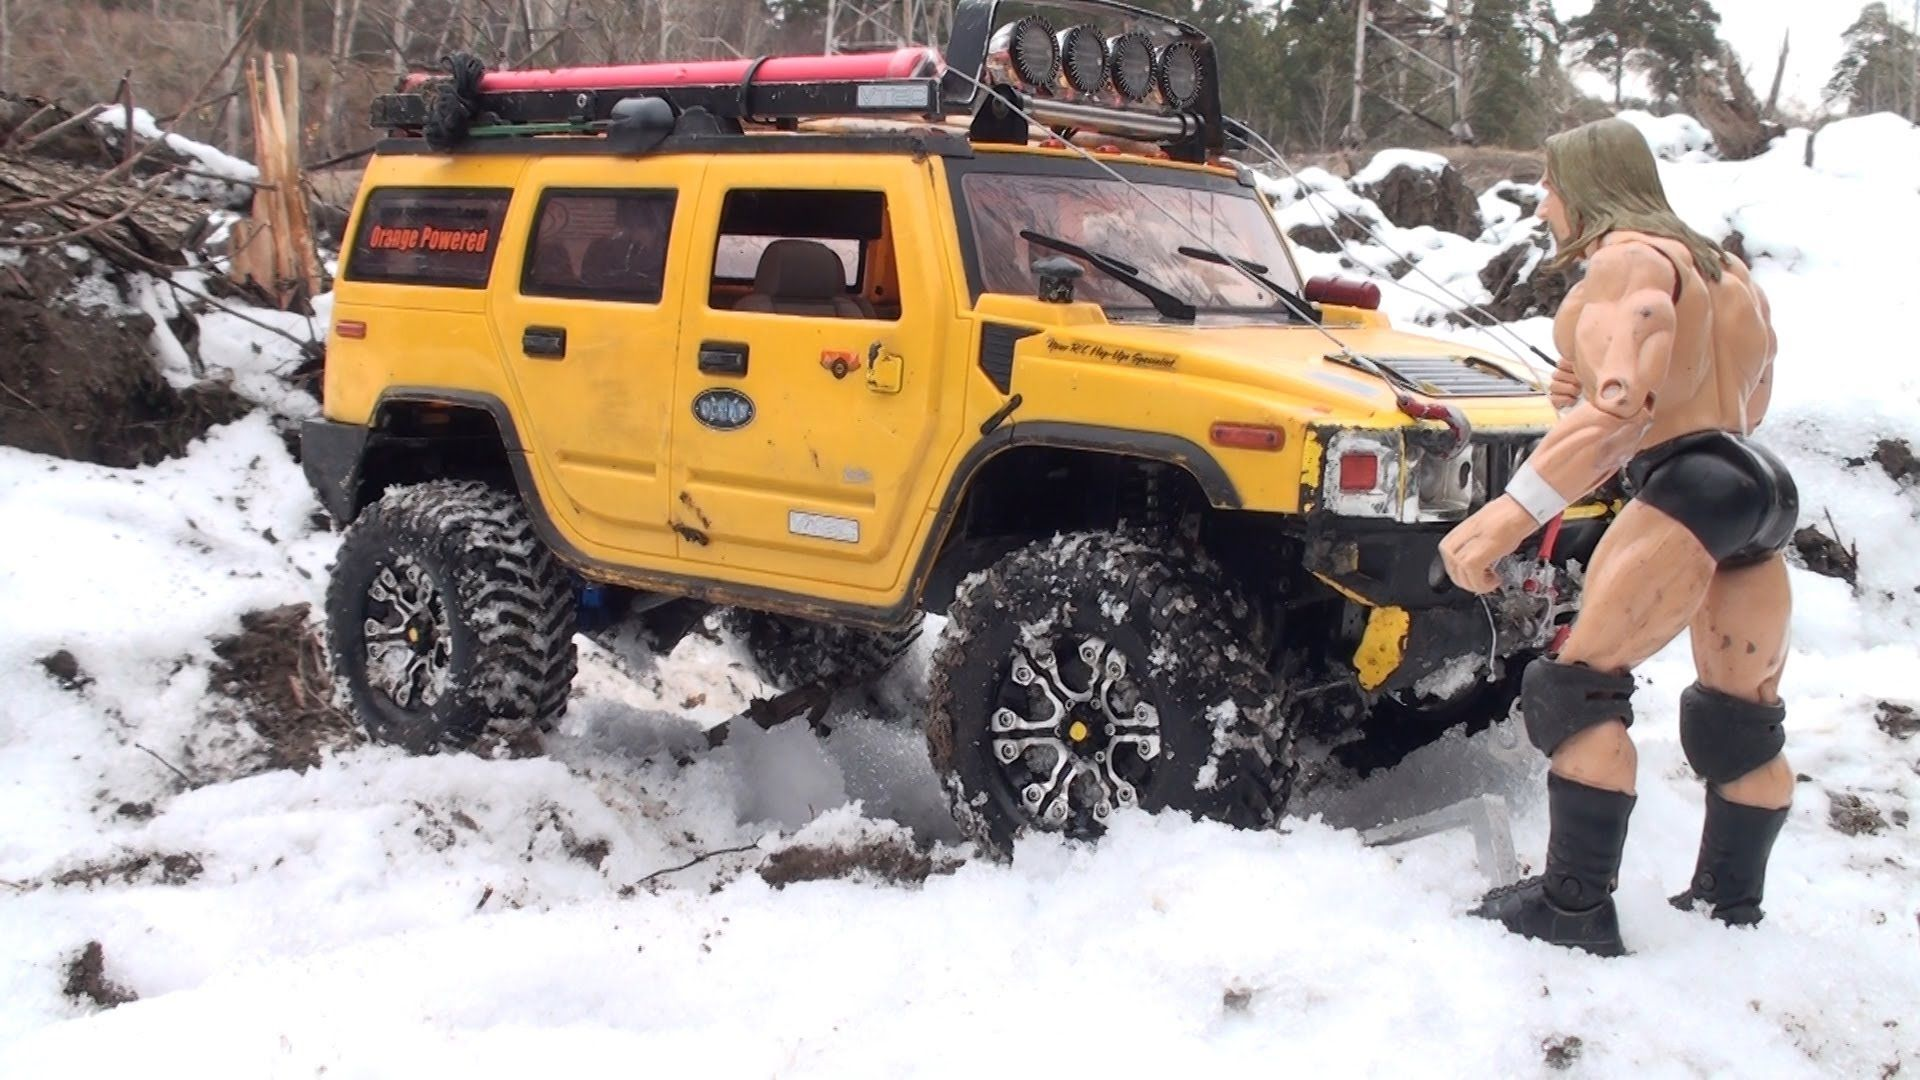 Rc Off Road Hummer H2 Vs Jeep Wrangler Rubicon Vs Toyota Hilux